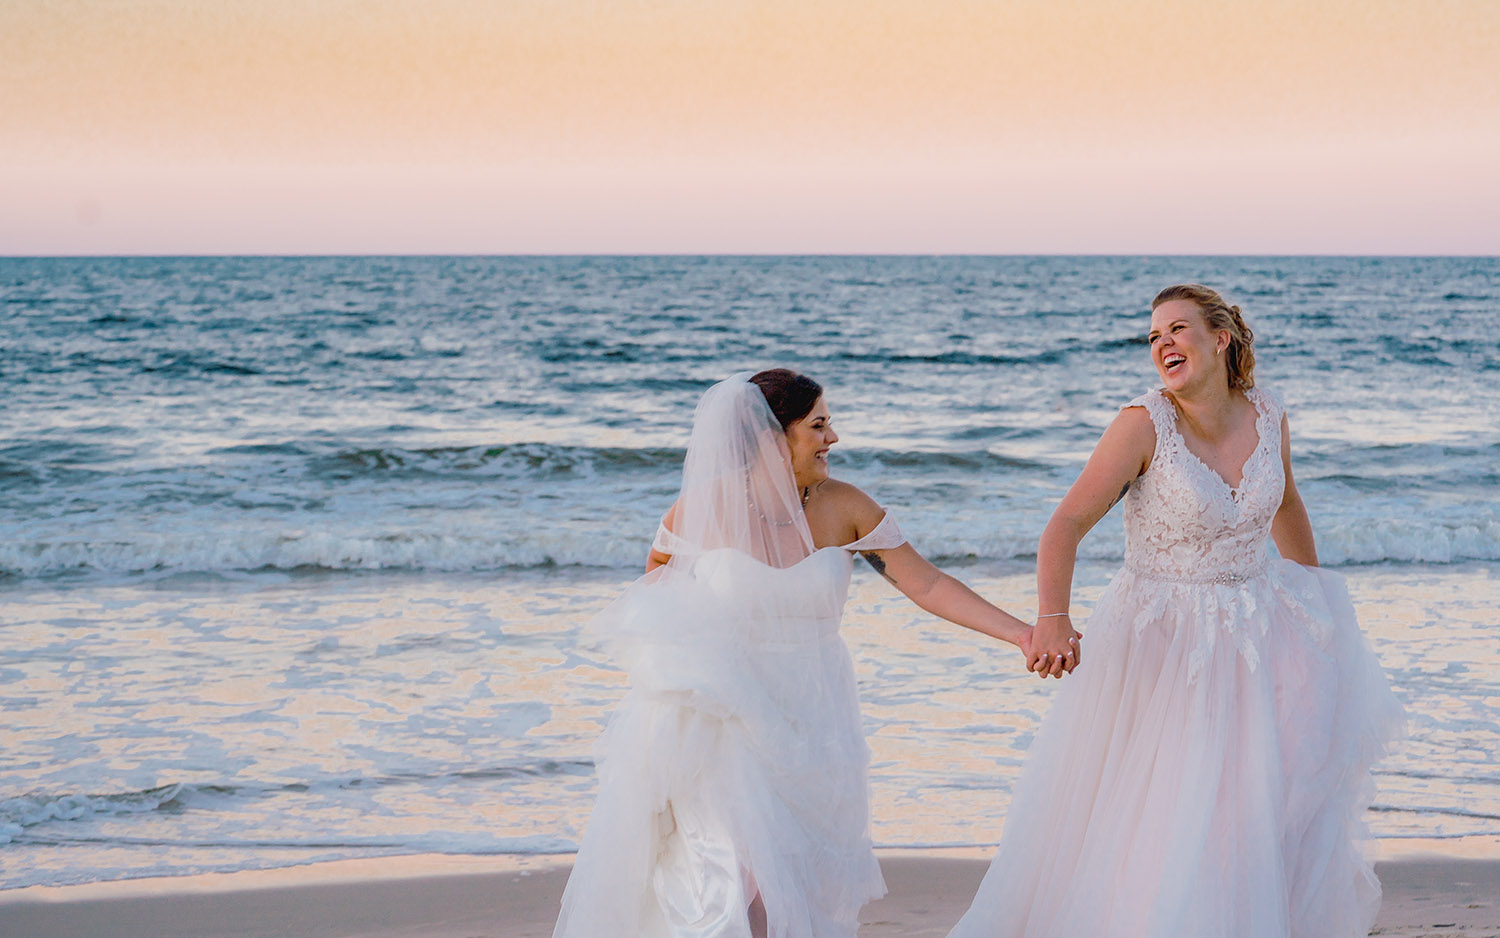 Wedding Photography - Brides holding hands on beach